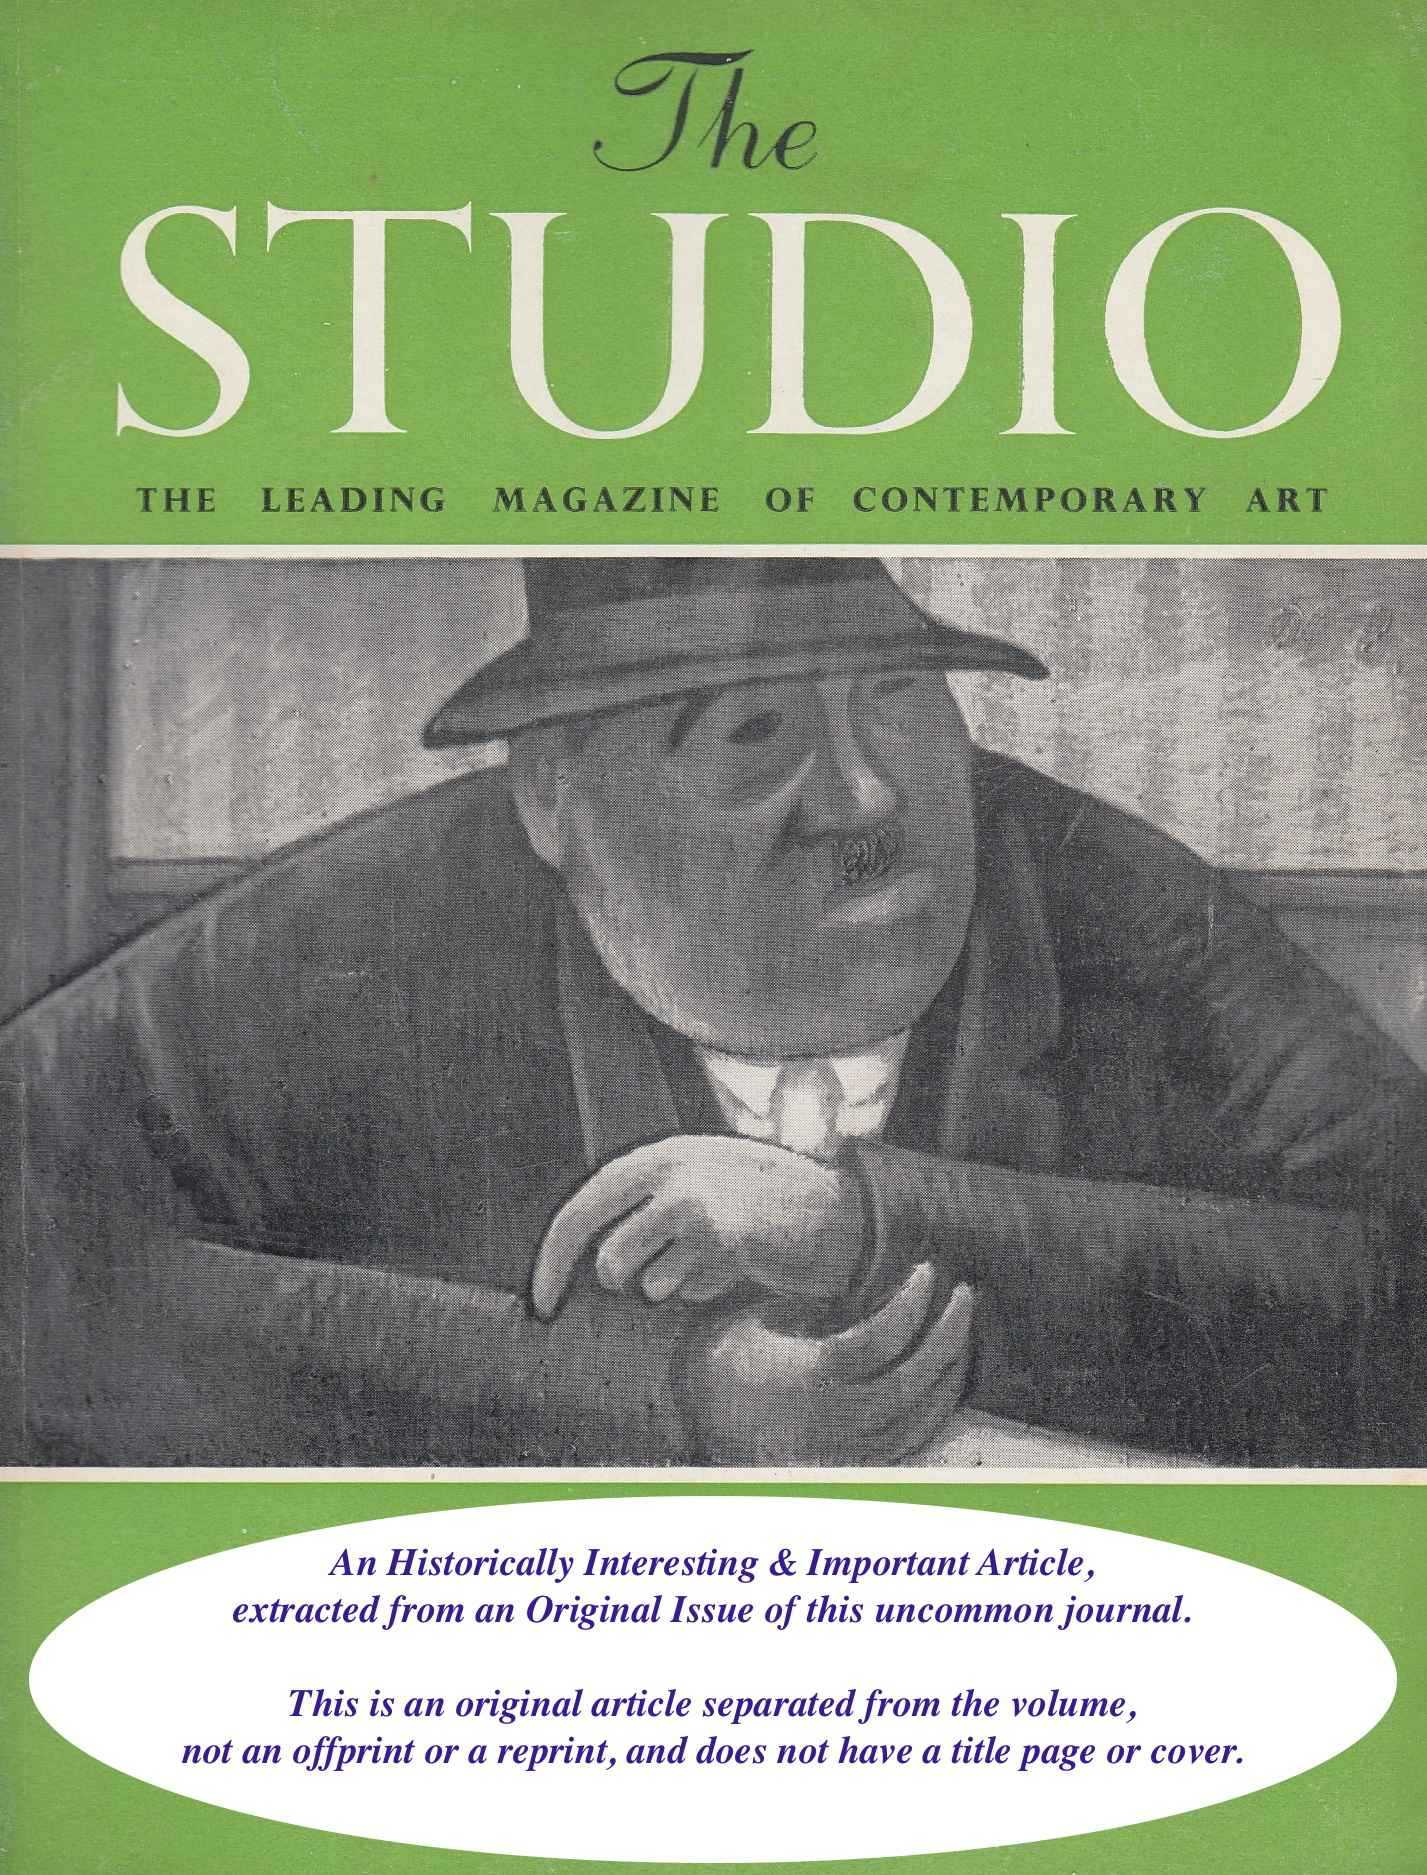 EMERY, ANTHONY - Peter Ibbetson: Painter. An original article from the The Studio magazine, 1950.